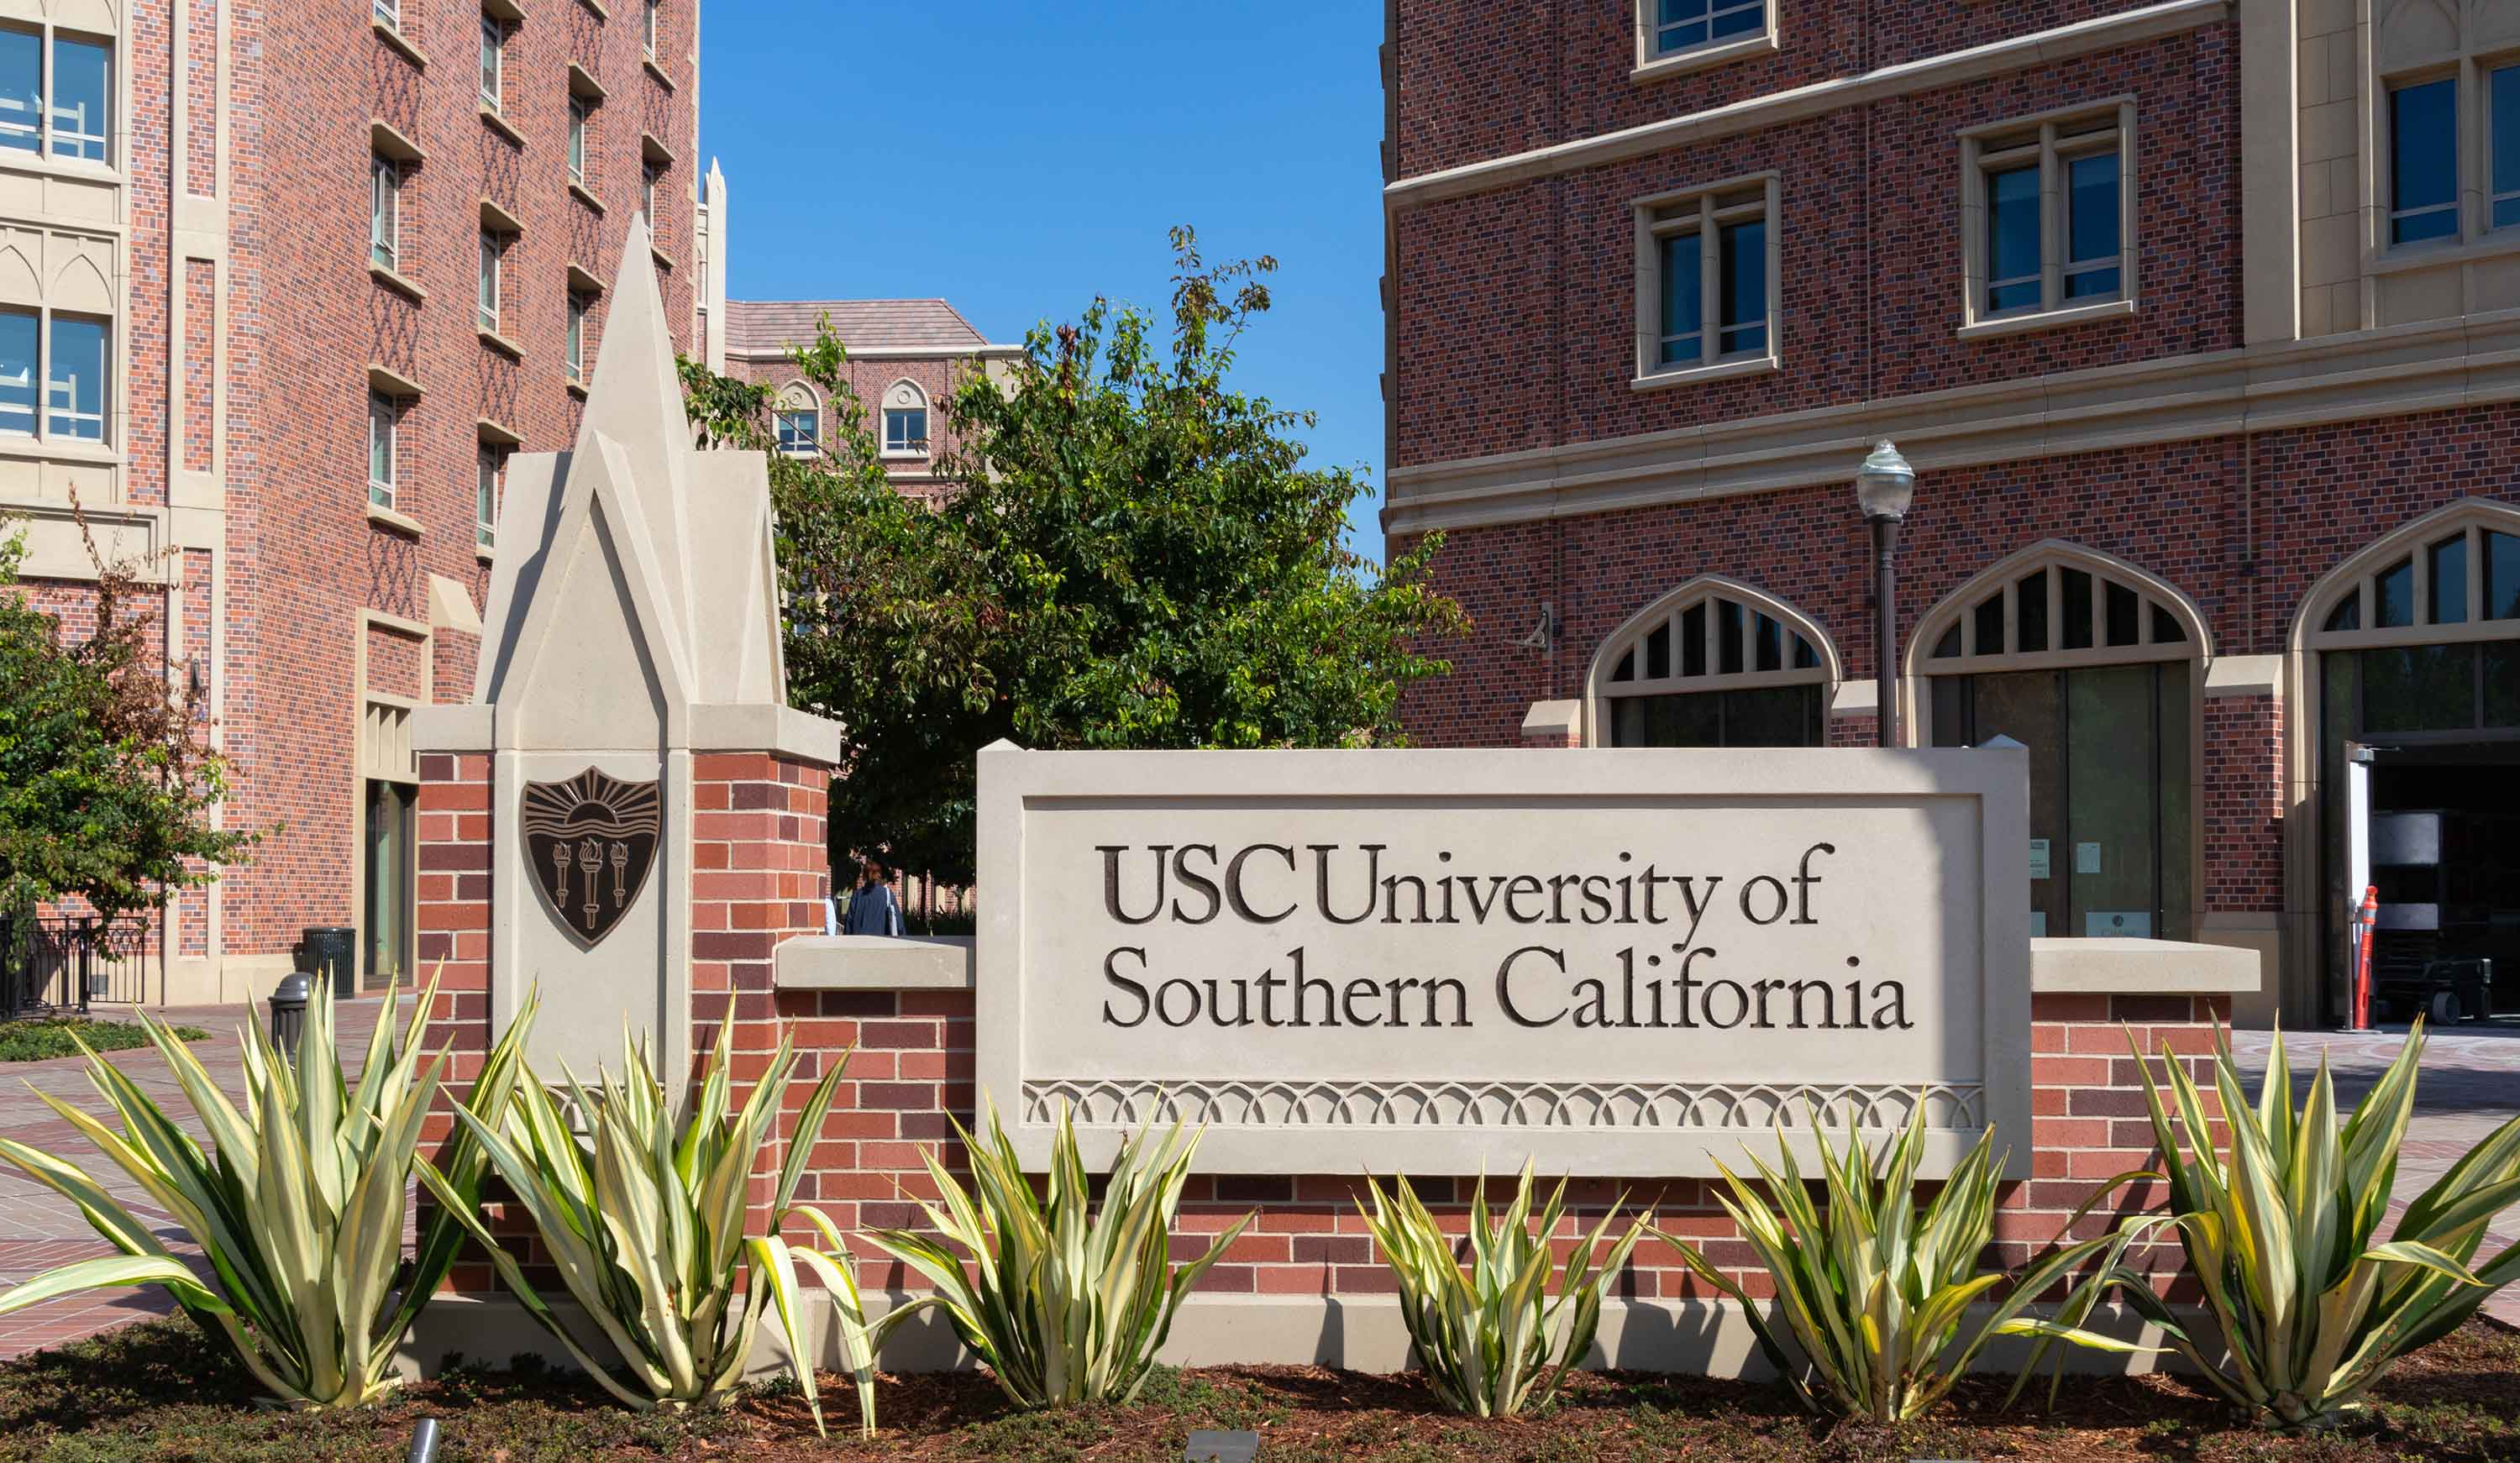 USC says most undergraduate classes will be online for fall semester